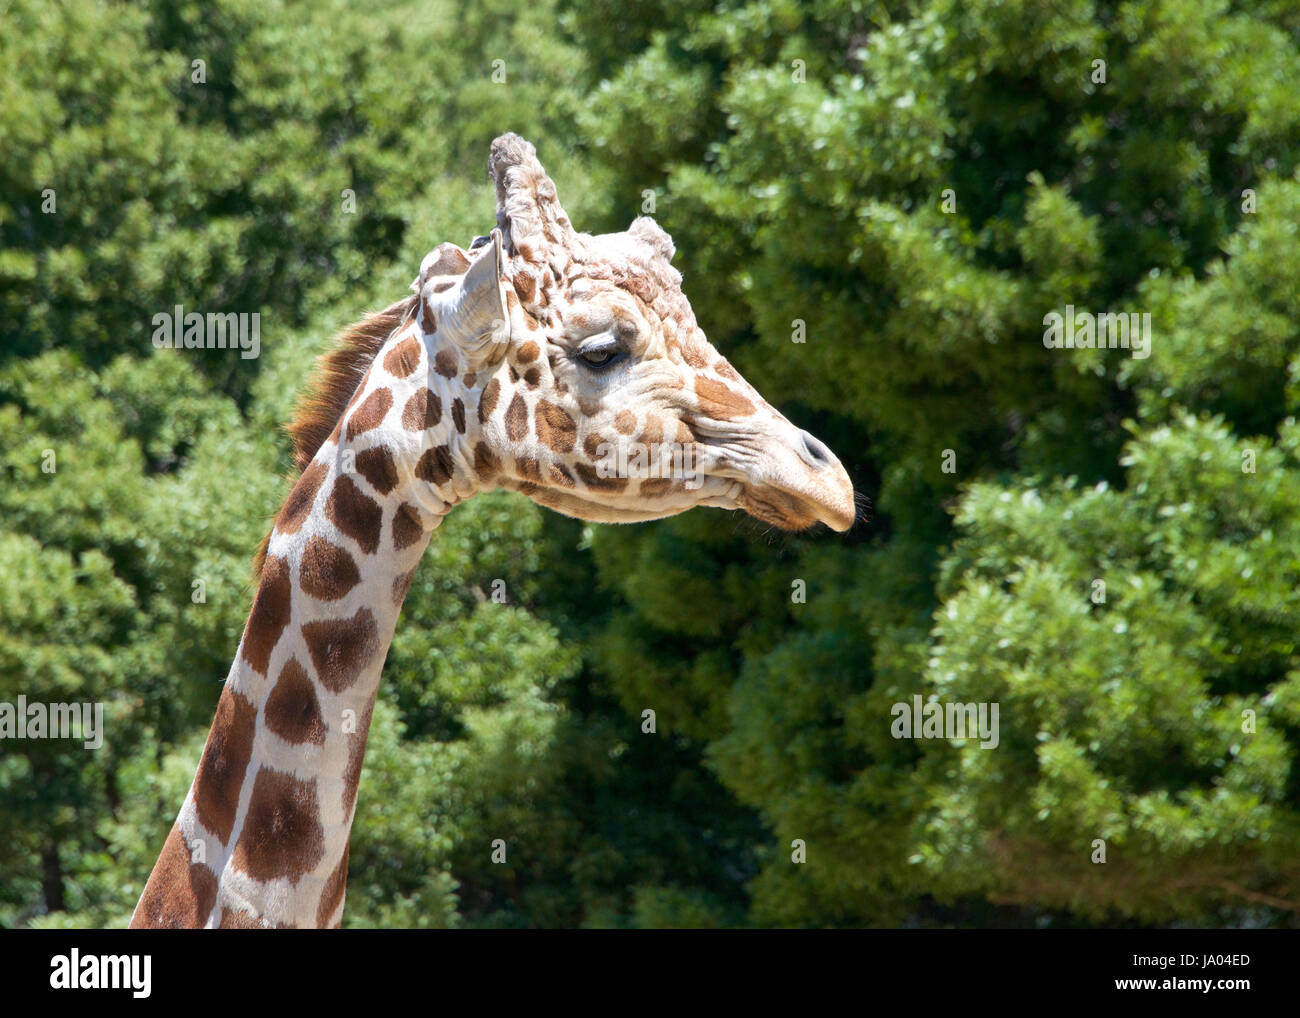 Portrait of a giraffe looking to viewers right. Tall green leafy trees in the background. - Stock Image